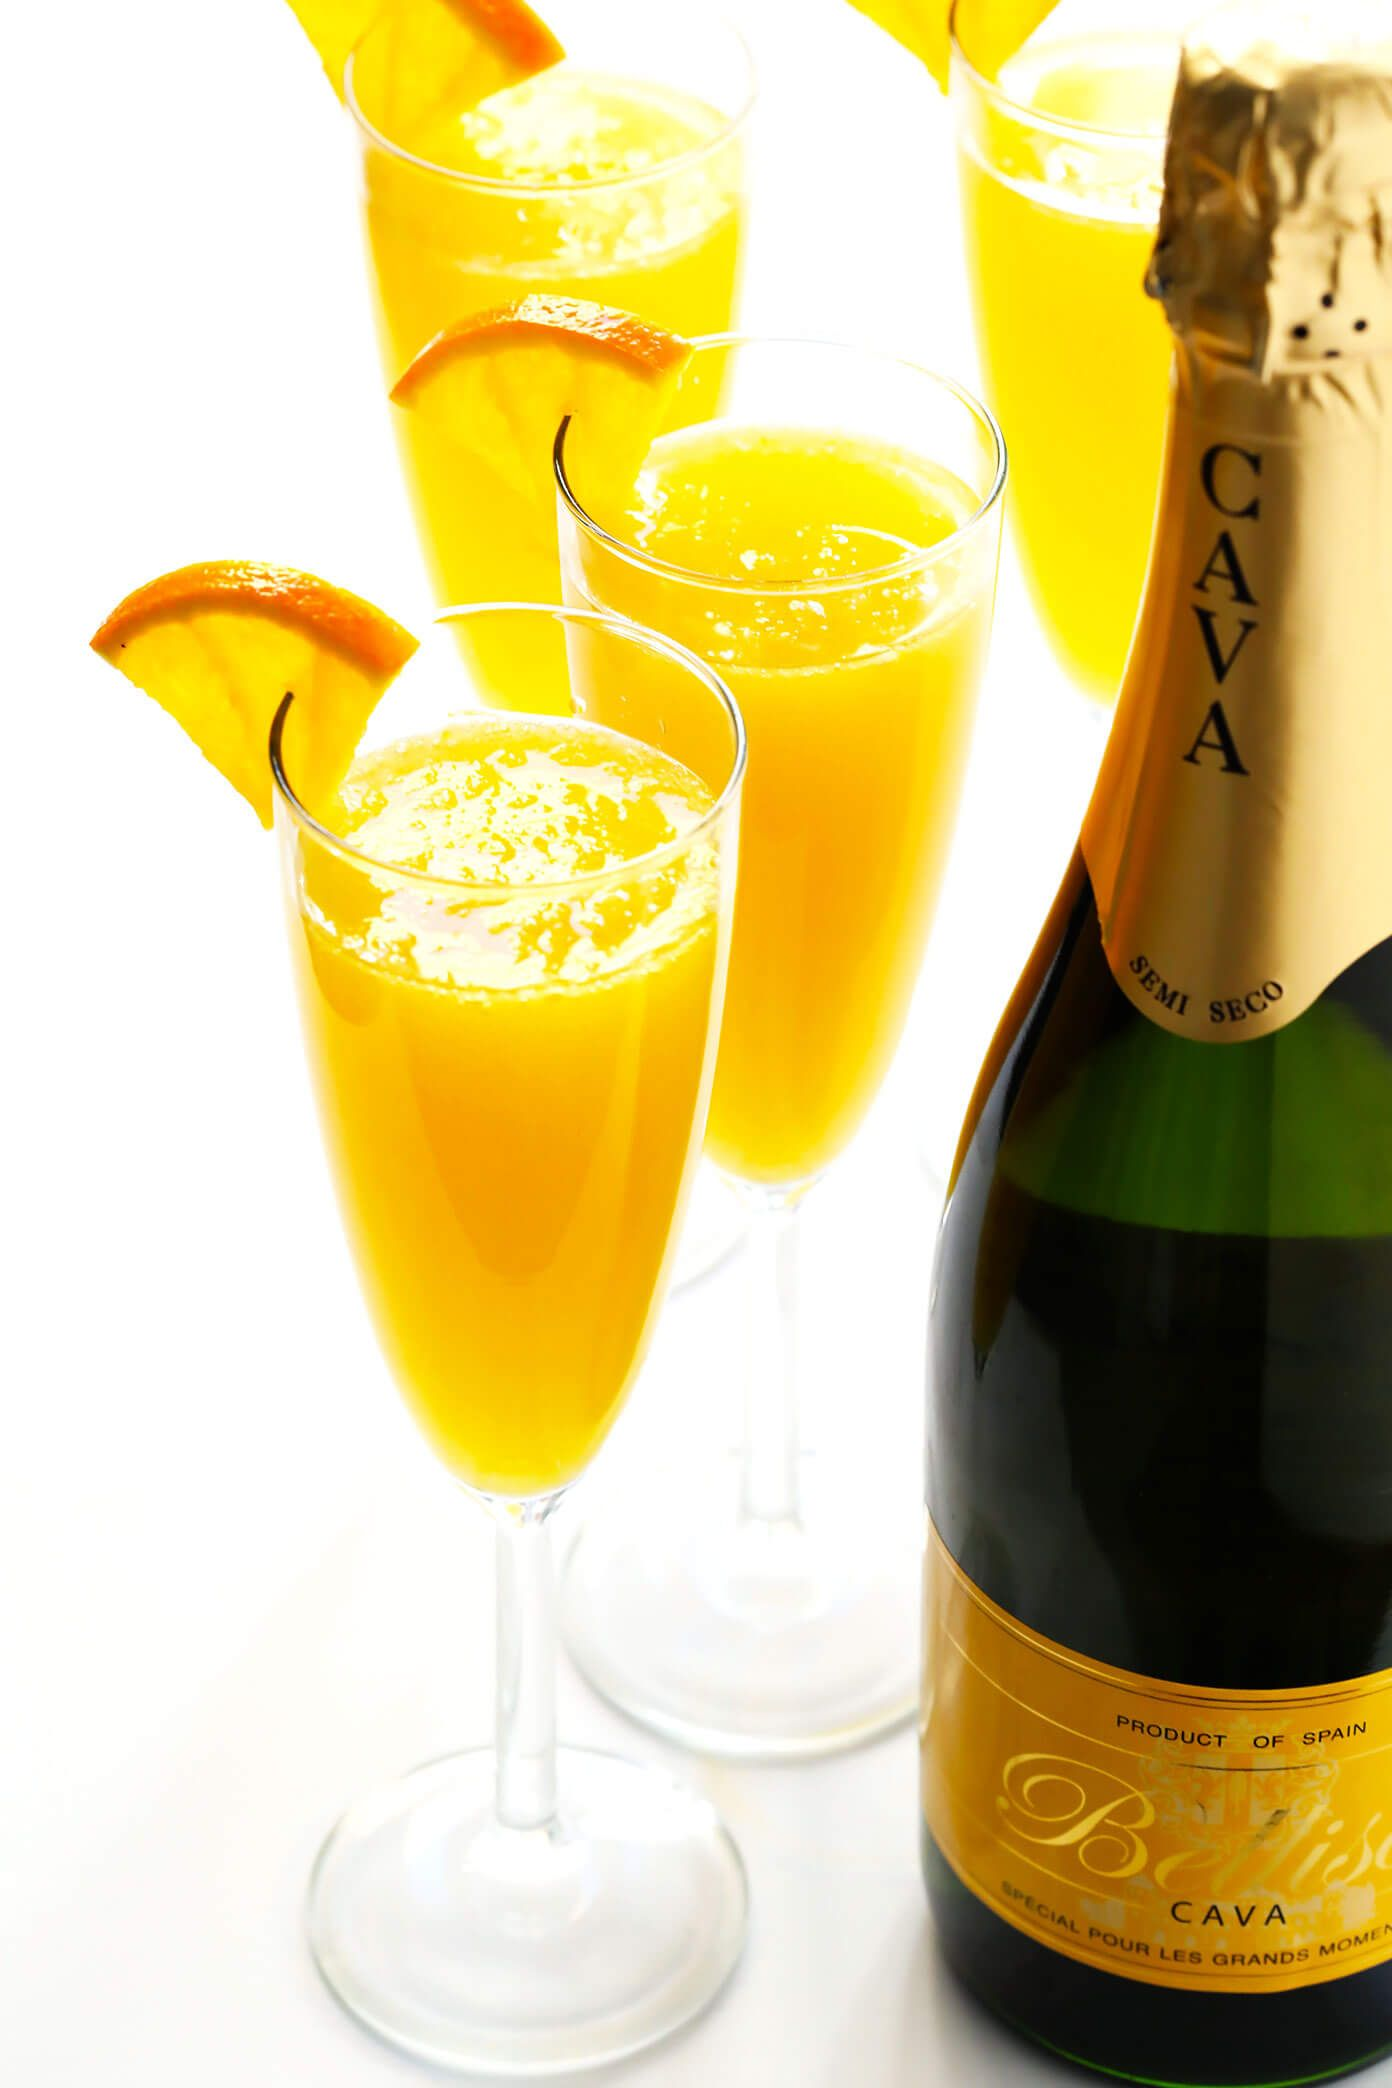 Learn how to make mimosas with this classic mimosa recipe Plus tips on how to make a pitcher for a crowd how to customize your cocktails with various addins and how to ma...